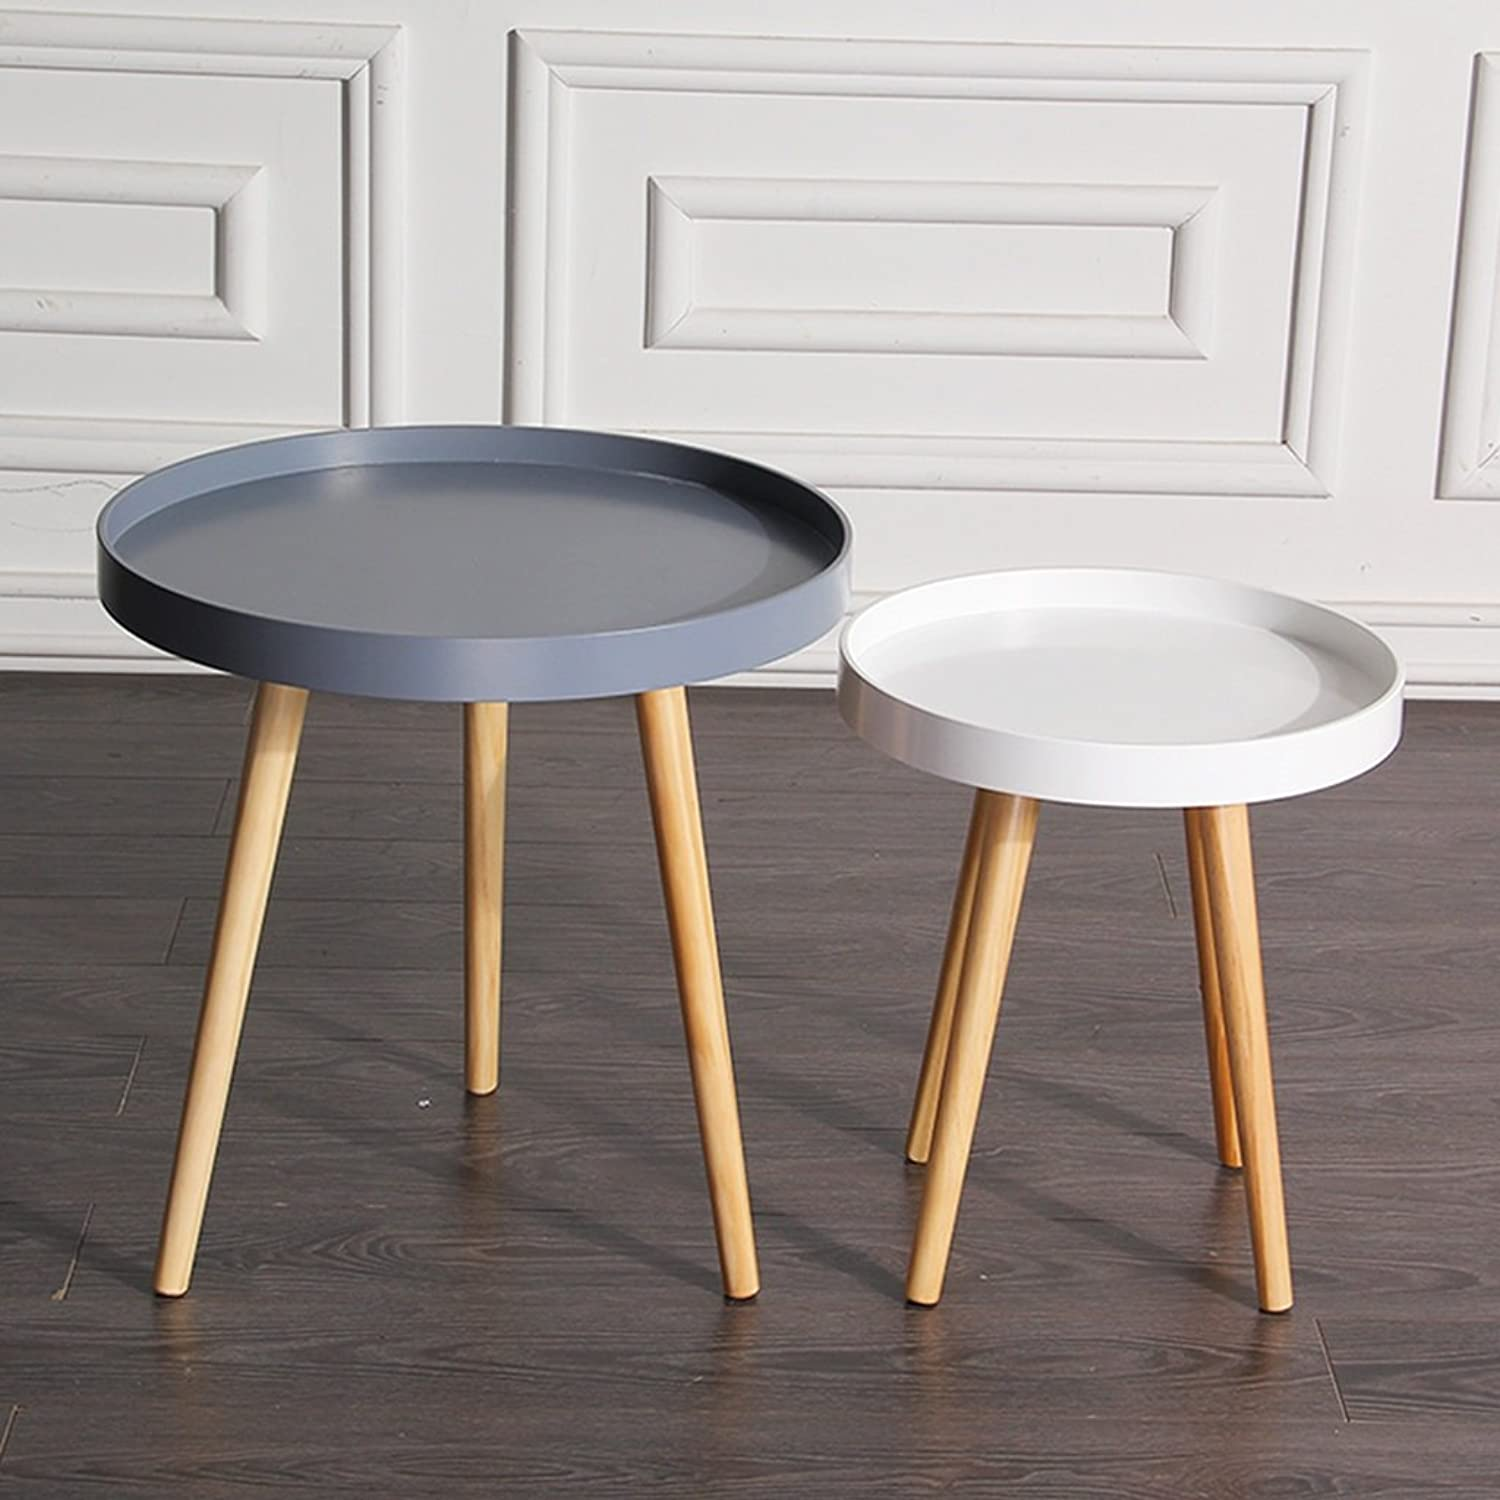 End Tables Coffee Table Round Table Sofa Small Side a Few Corner Tables Small Round a Few Small Tables Solid Wood Legs Desktop Edge Design, 1 Large +1 Small (color   Grey 50  50cm+White 38  38cm)